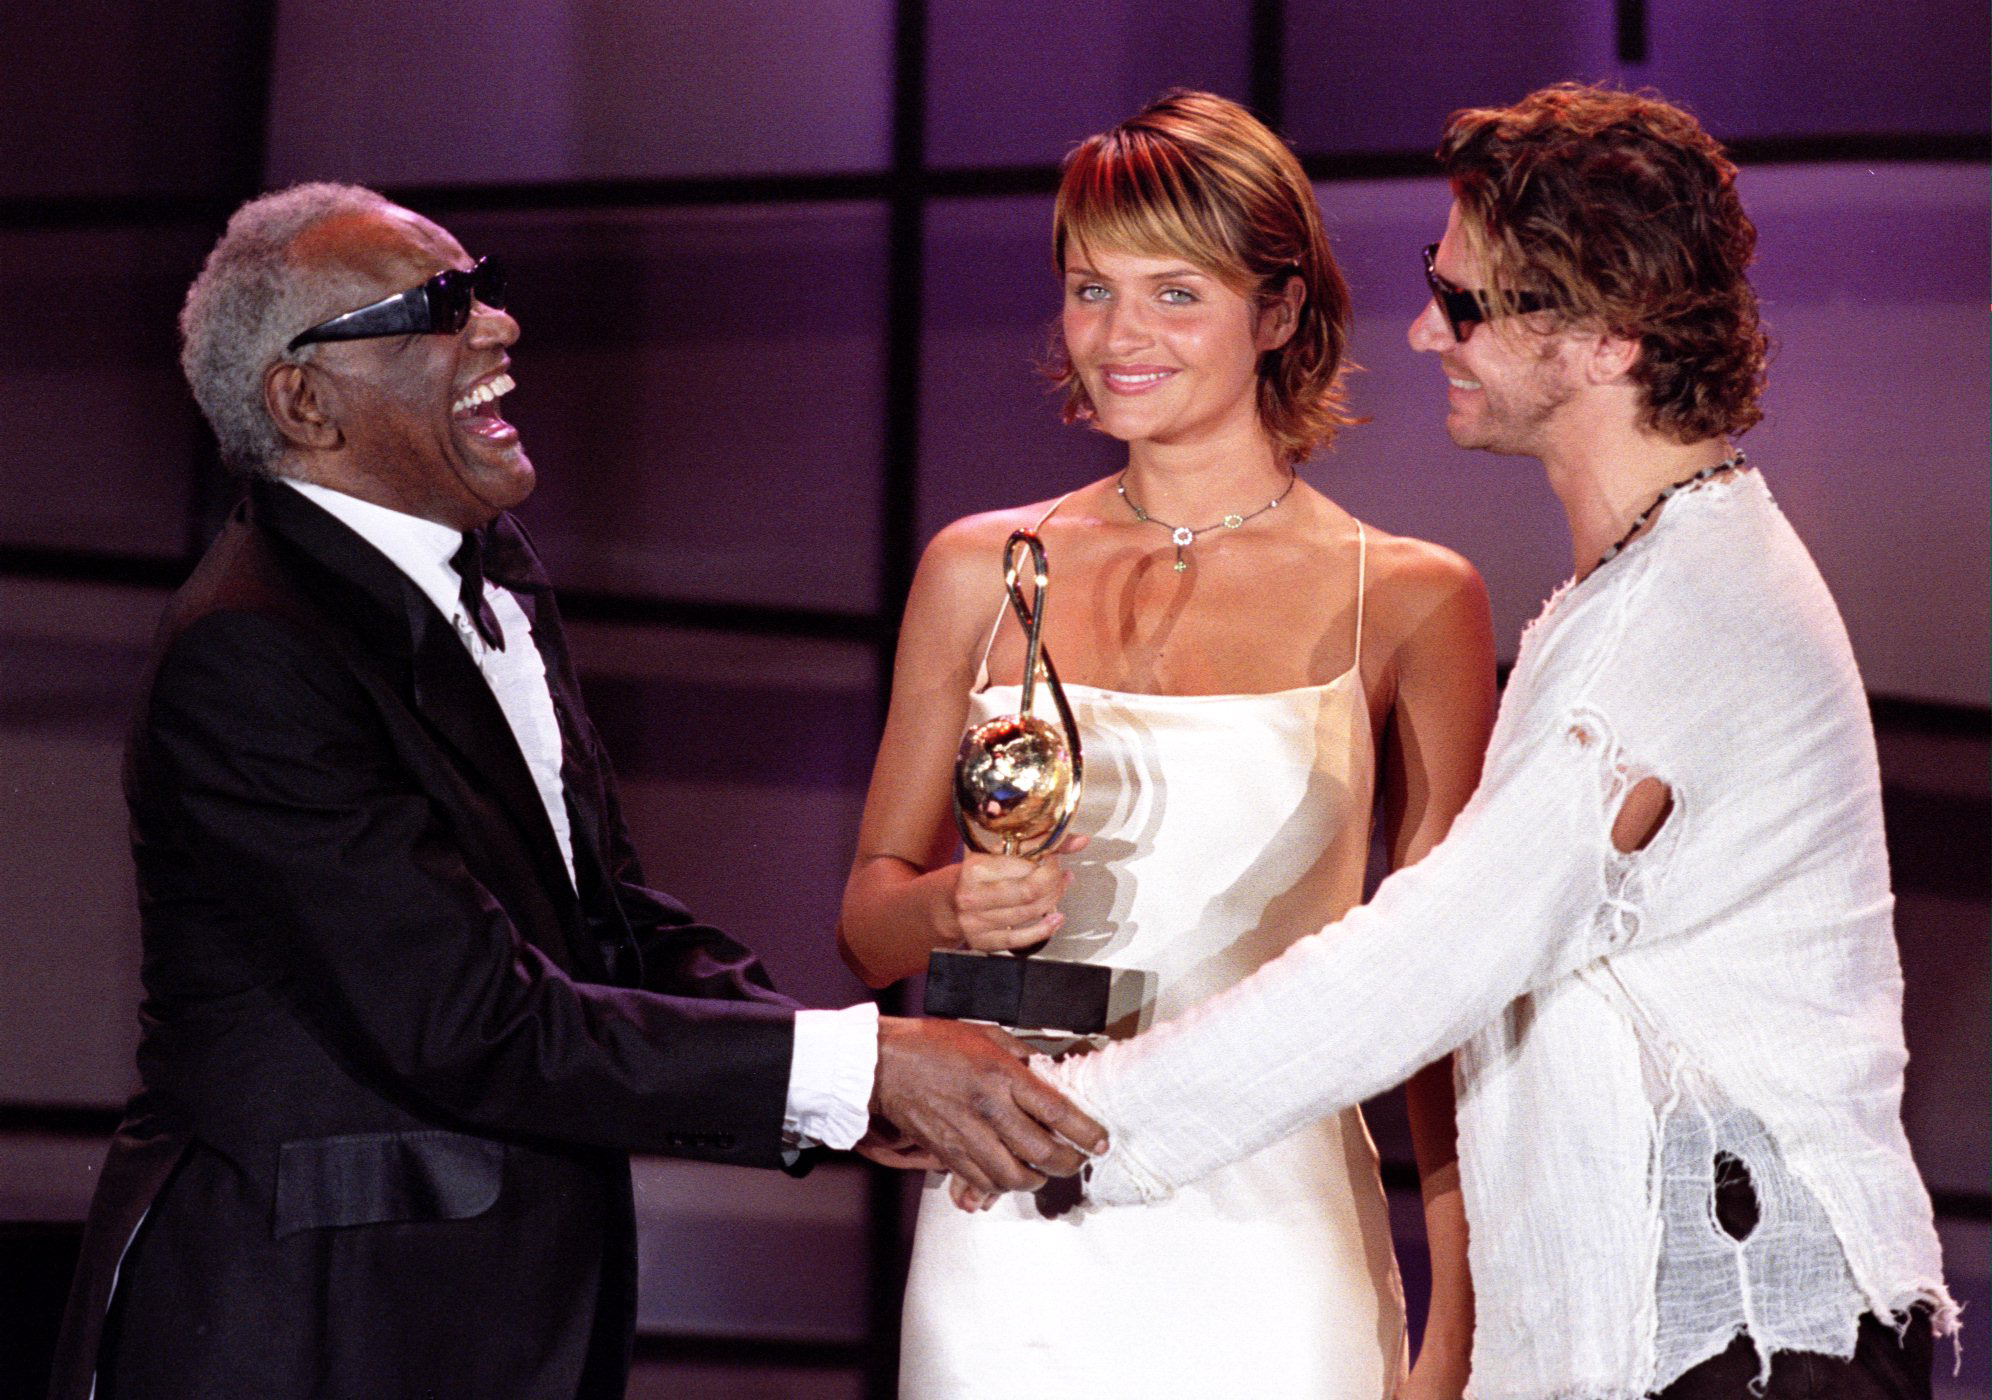 Australian singer of INXS Michael Hutchence and Danish top model Helena Christiensen greets American singer Ray Charles during the World Music Awards TV show in Monte Carlo May 4 - PBEAHUNGOCF